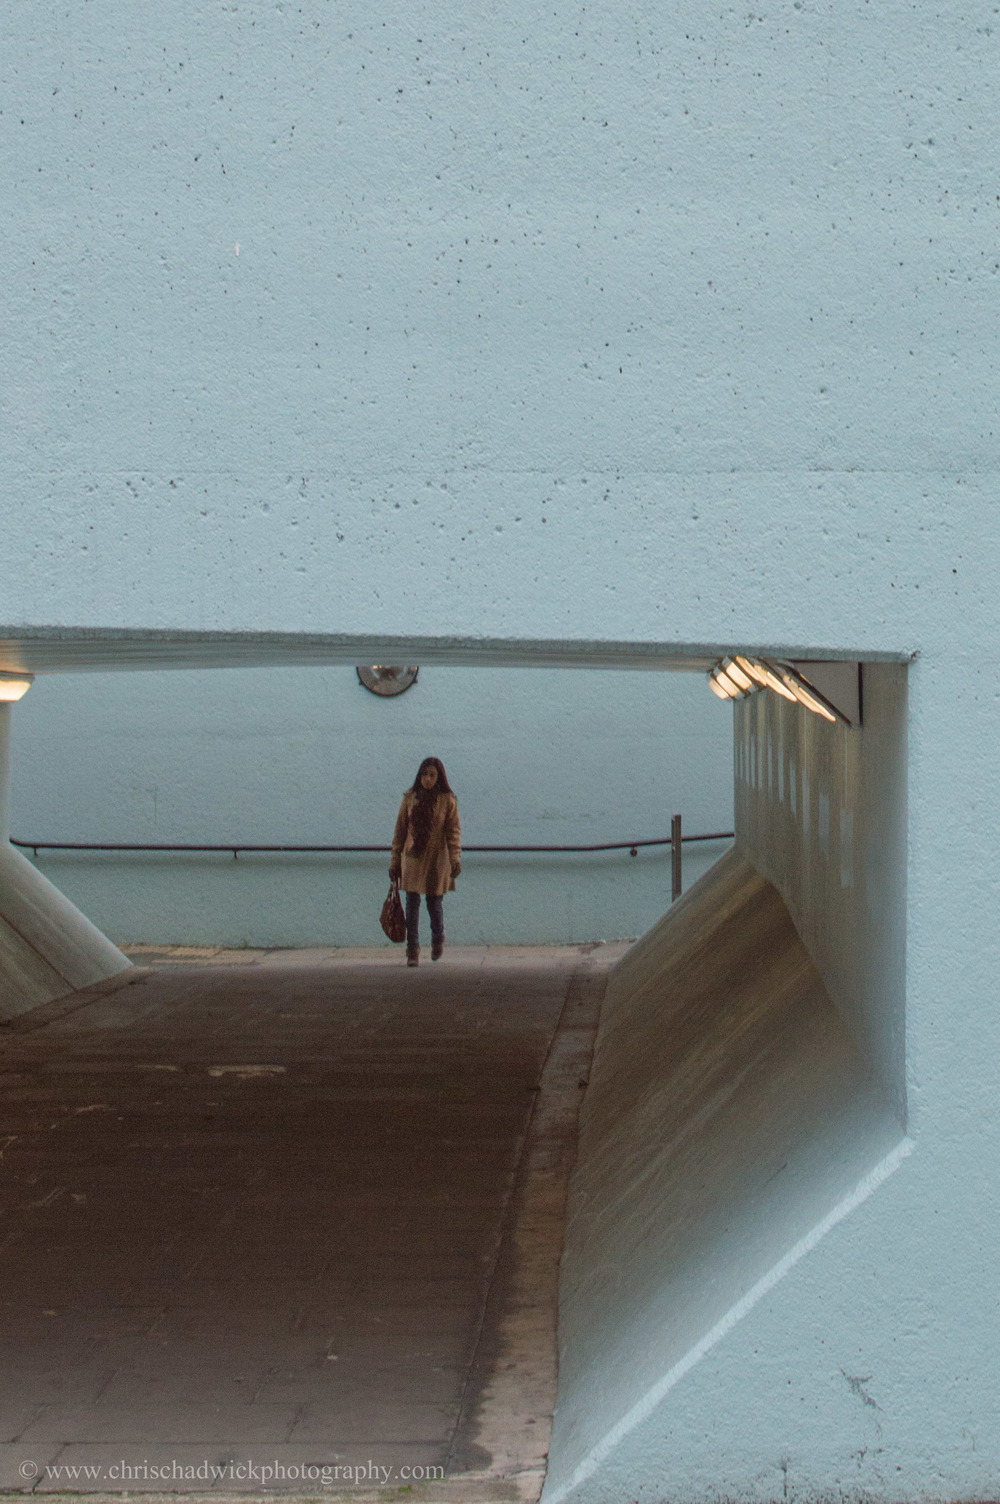 The cropped image removes the street level construction leaving only the underpass and the girl, who is now clearly the main subject. The painted blue underpass creates a frame for the subject. I kept the same image proportions of 3x2.